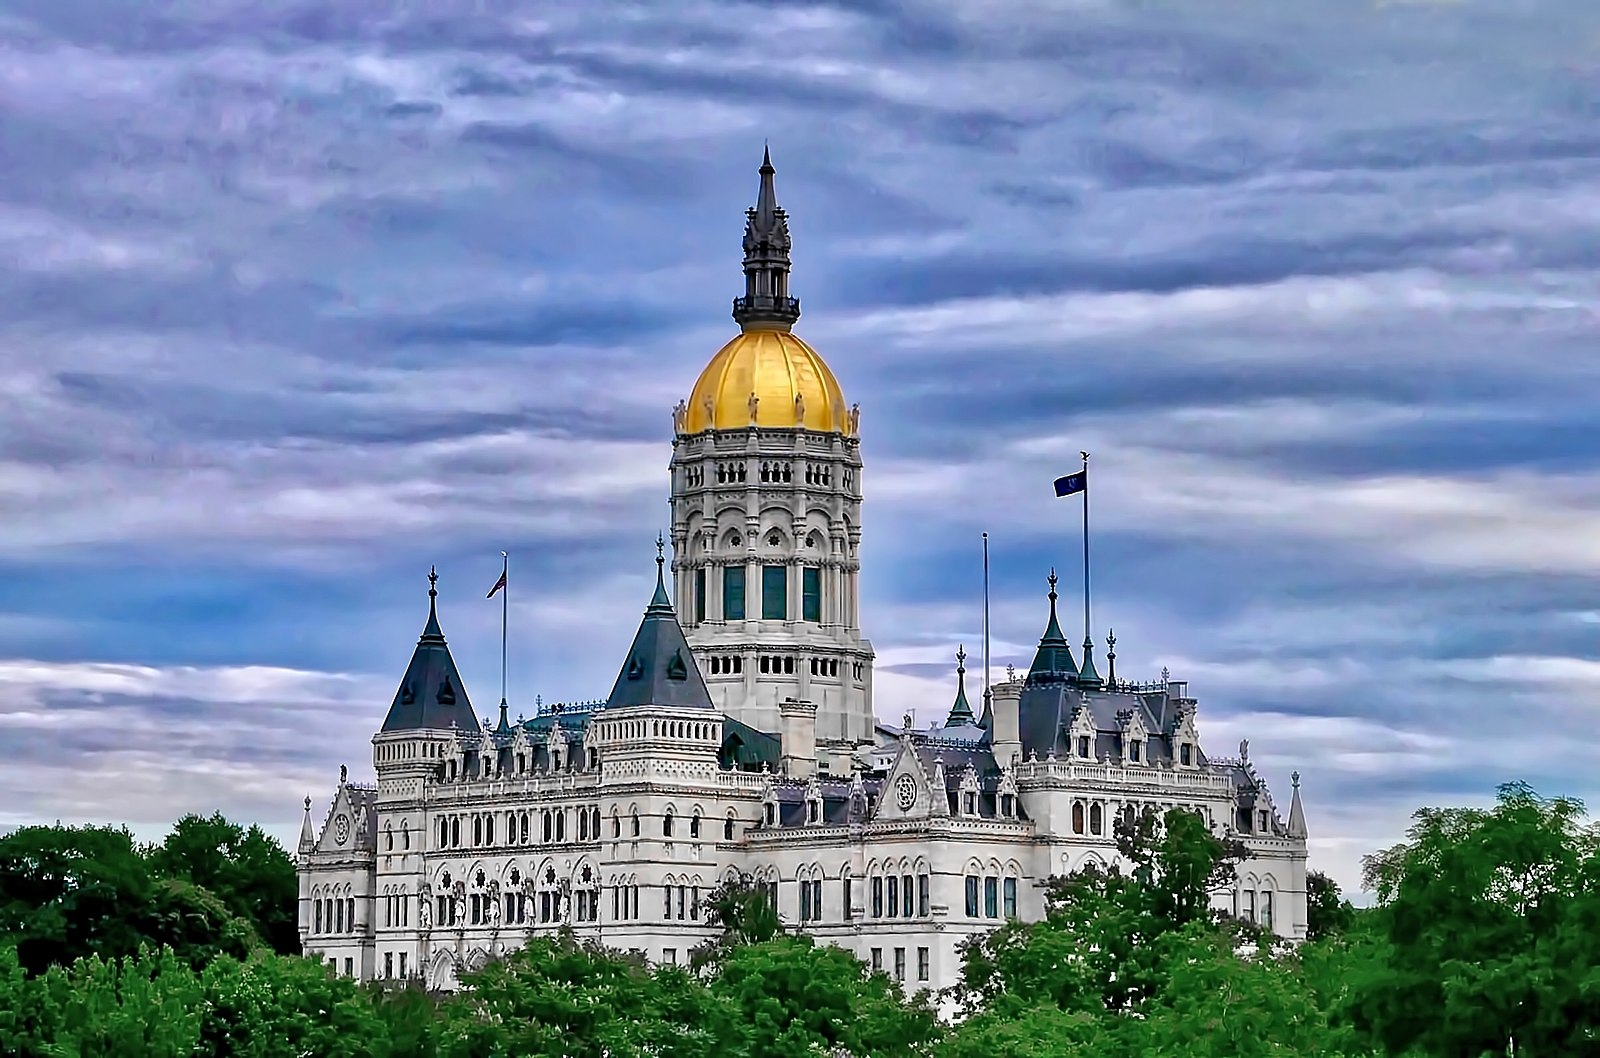 The Connecticut State Capitol building is seen in 2018 in Hartford. Credit: EGryk